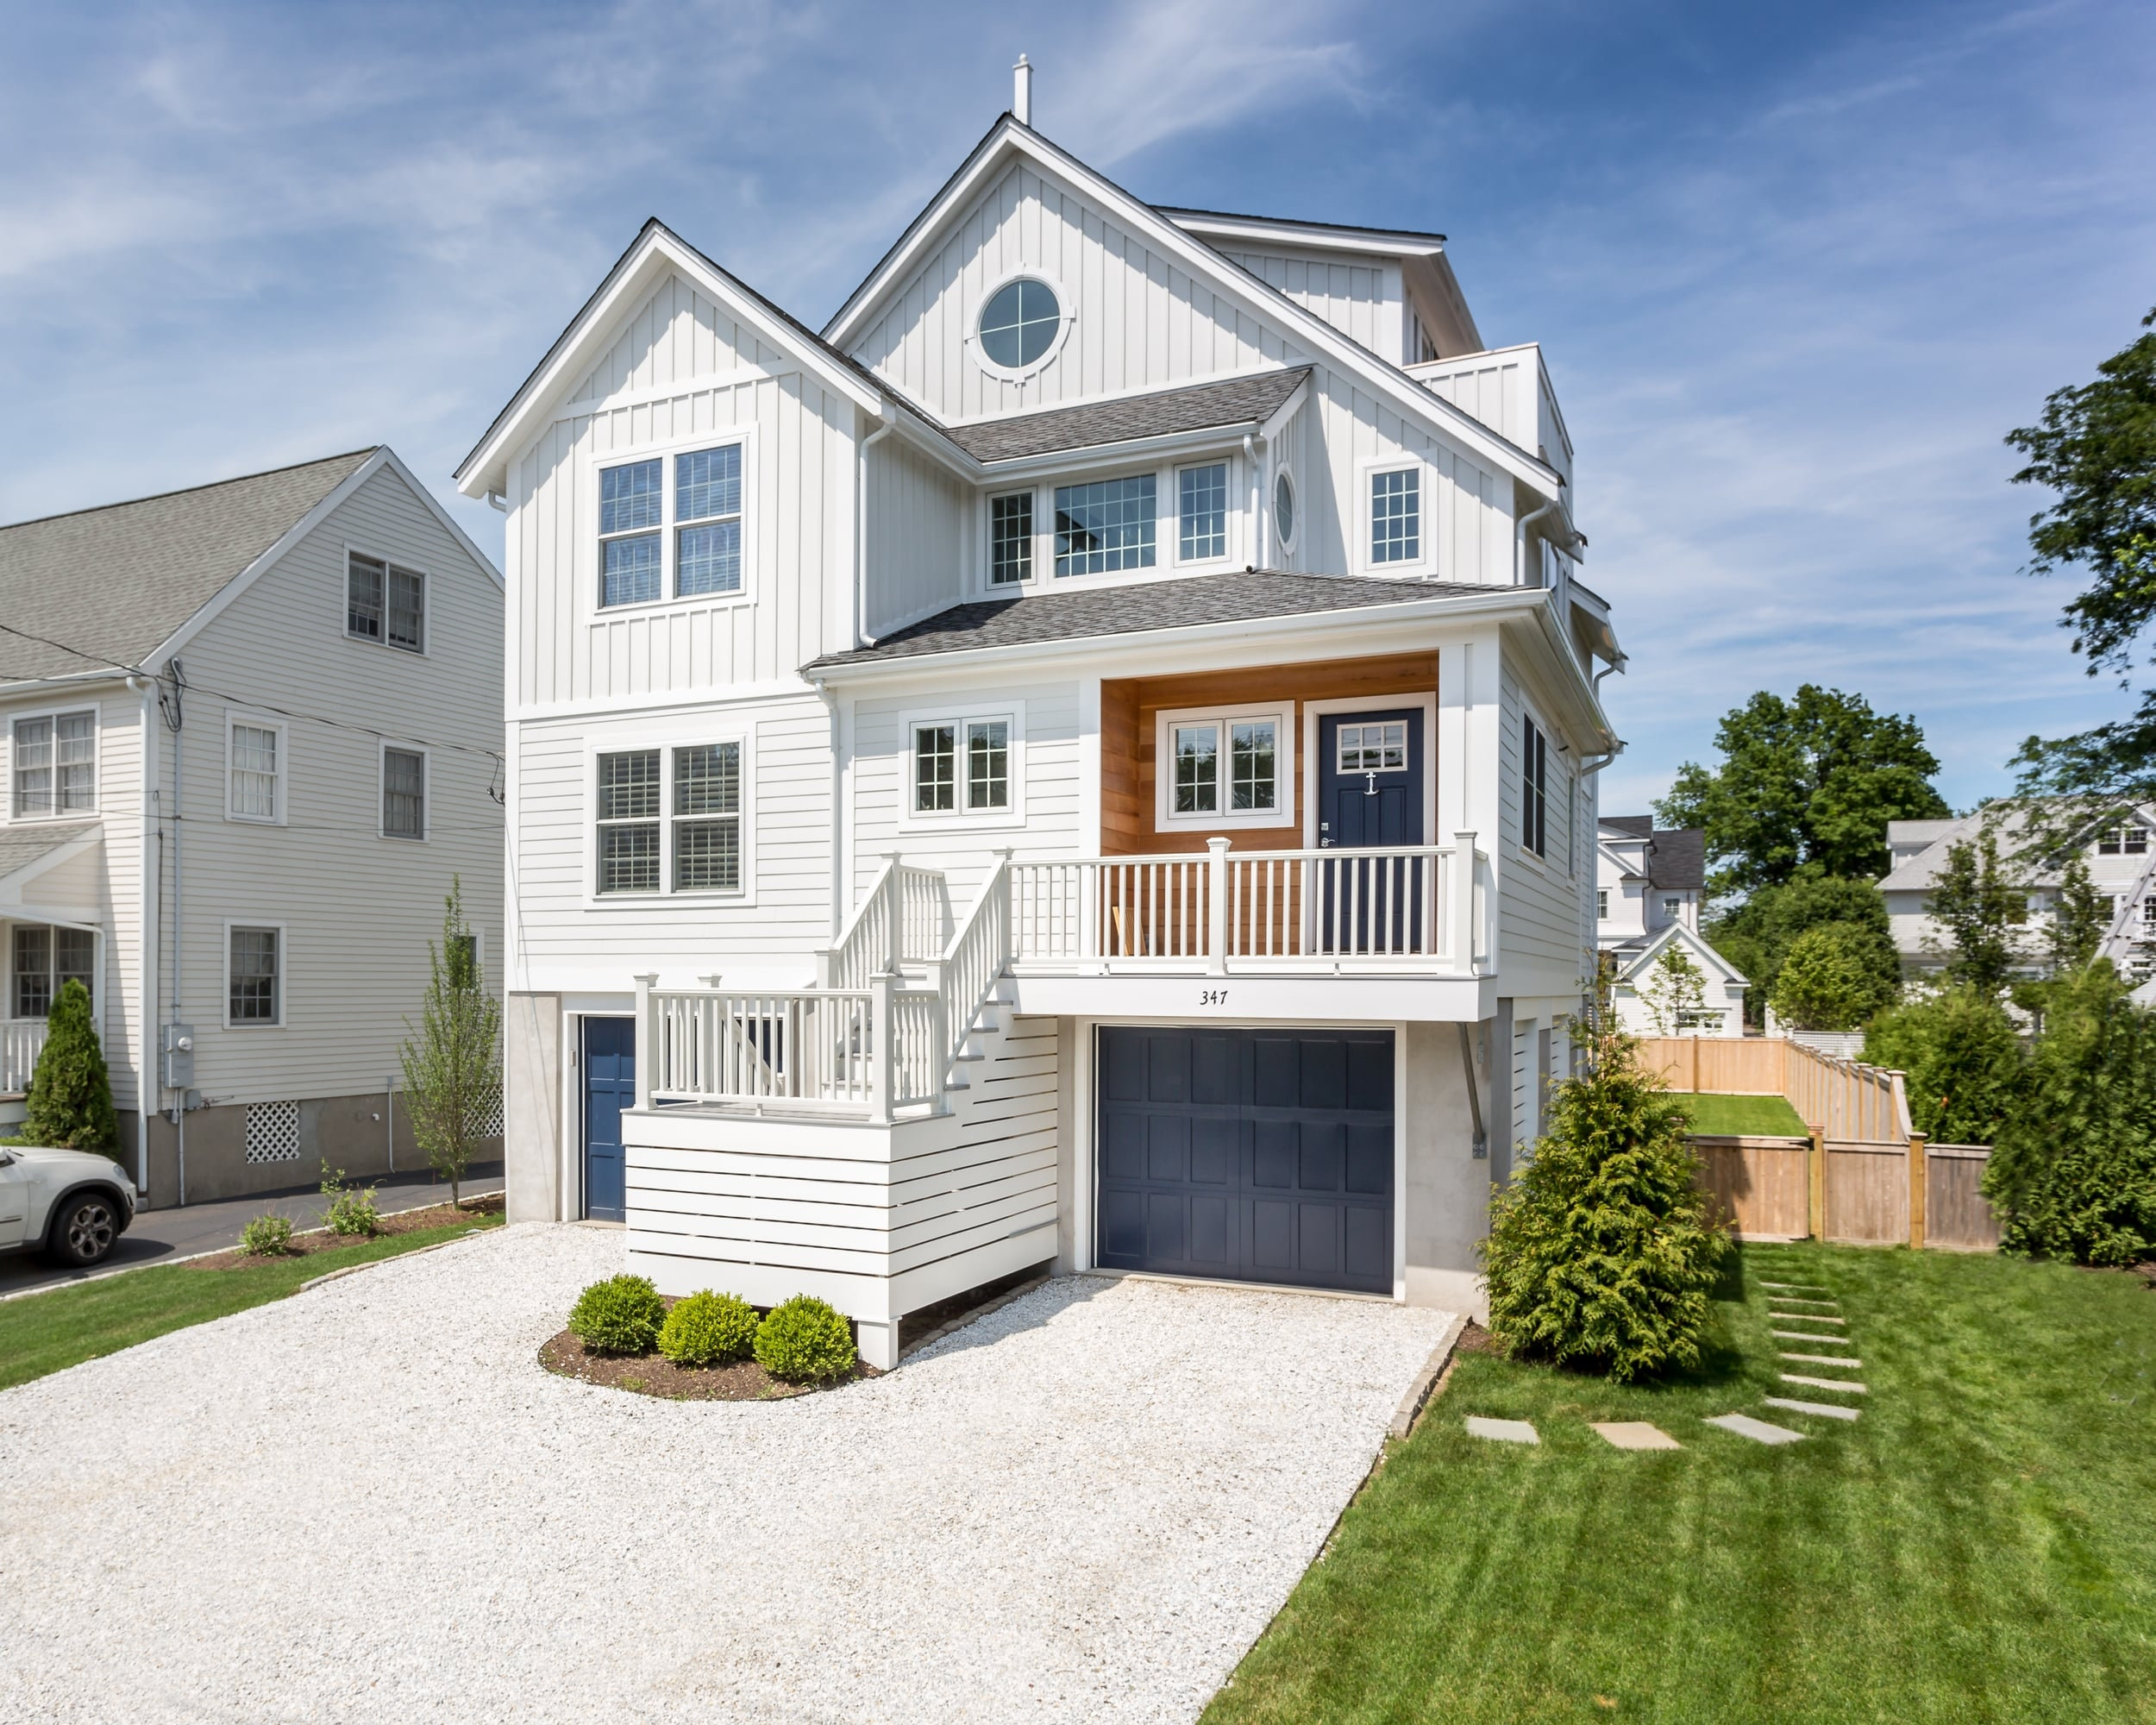 New Construction in Fairfield, CT